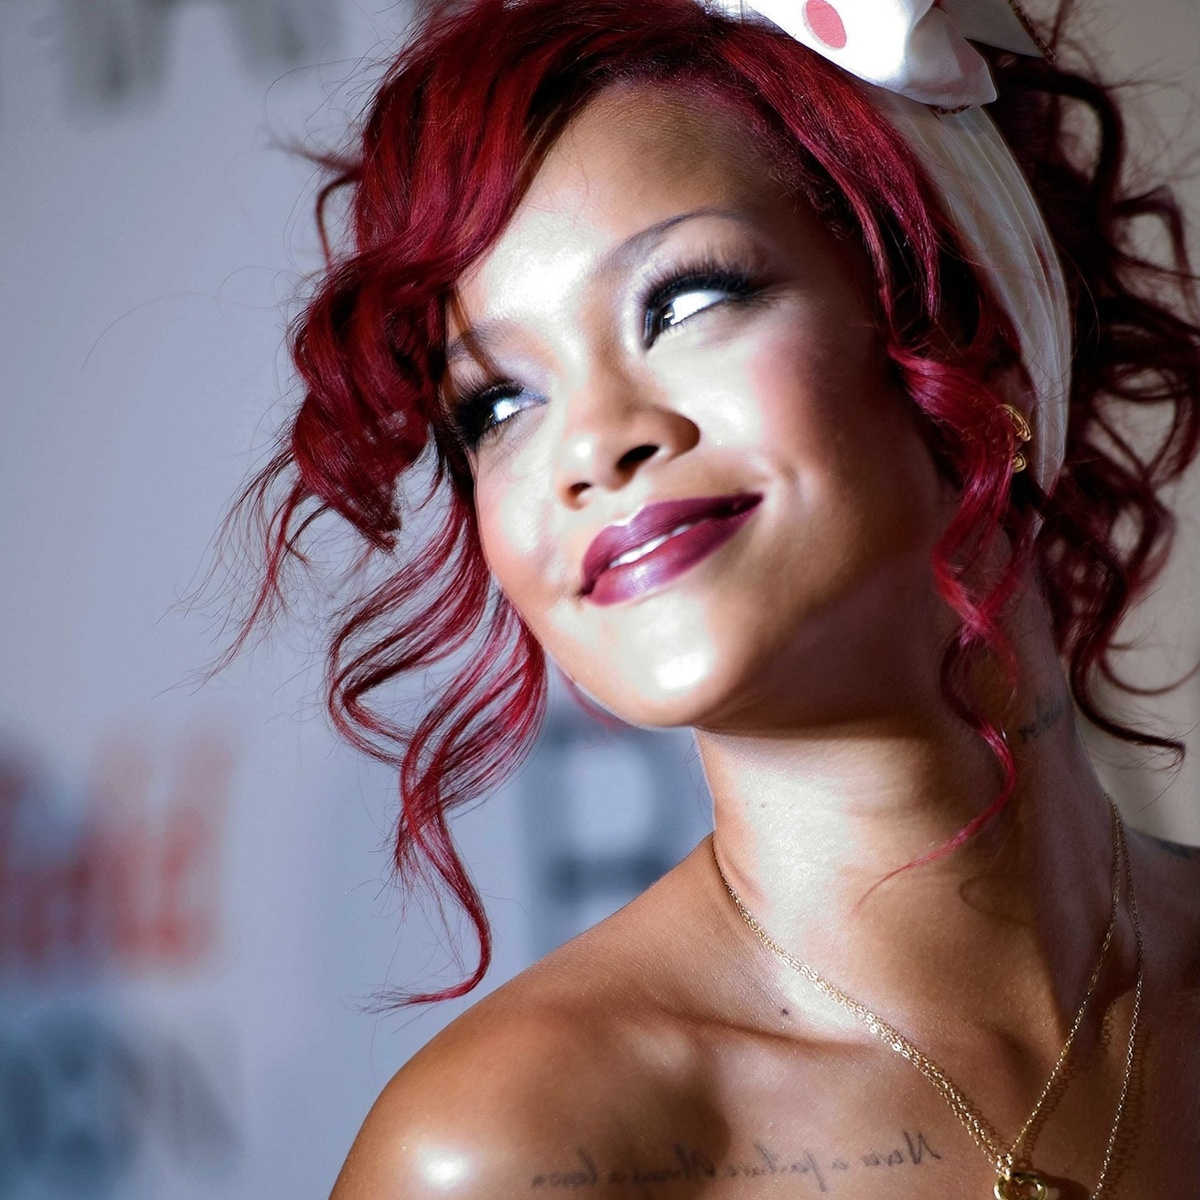 http://s1.favim.com/orig/22/beautiful-red-red-hair-rihanna-Favim.com-211074.jpg